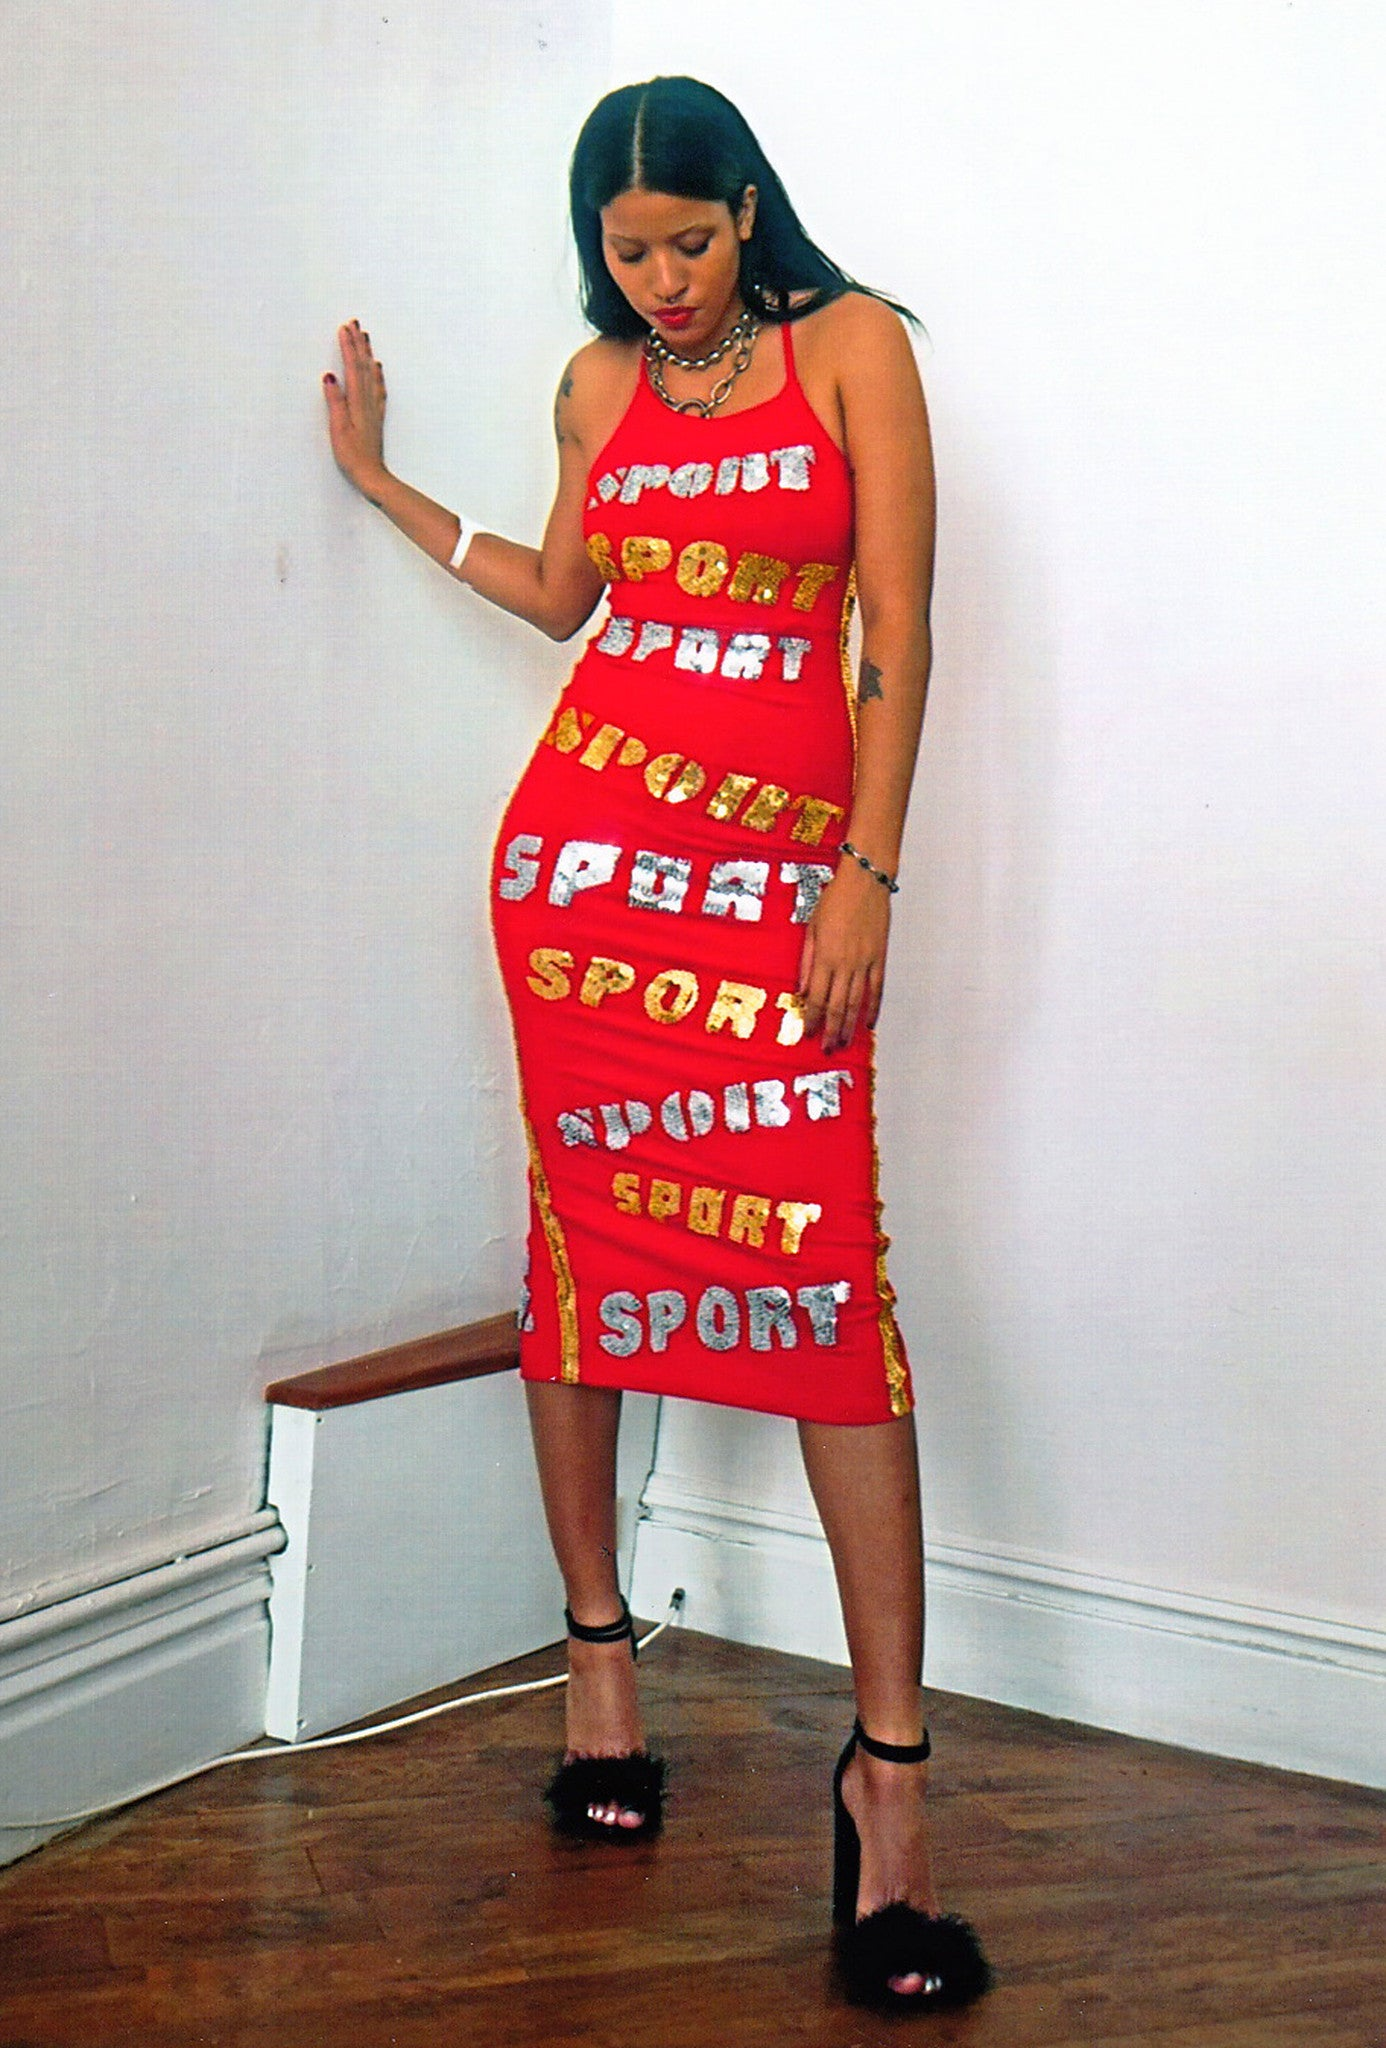 the ferrari dress, ferrari dress, sport dress, red sport dress, sequinned text, sequinned sport, ferrari pencil dress, lace up pencil dress, red dress, red sport dress, sequinned dress, sequinned pencil dress, sport, discount universe, di$count universe